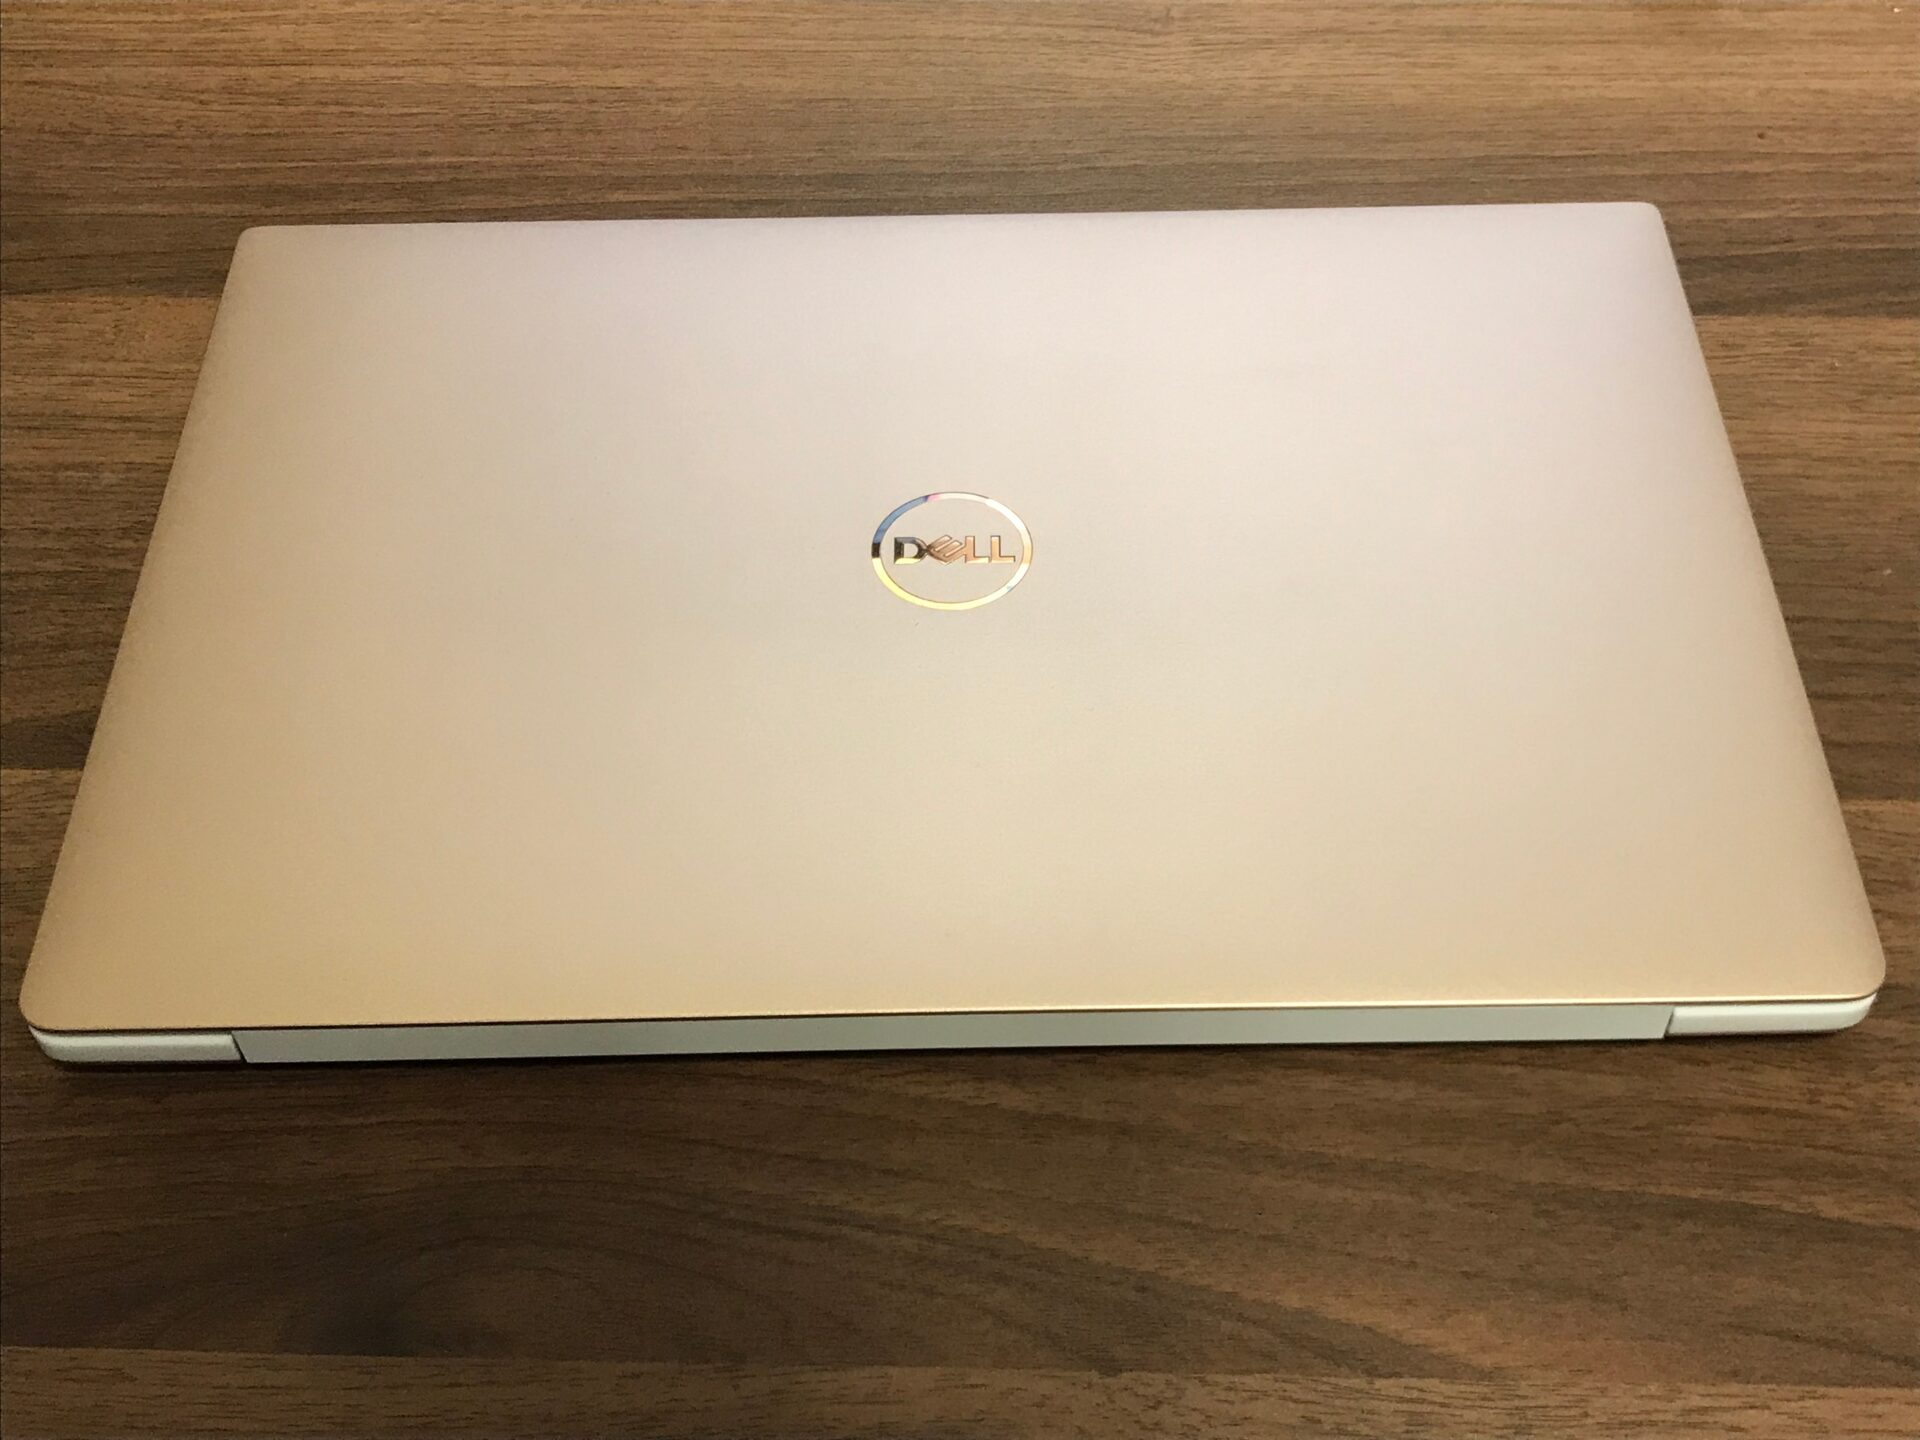 Dell New XPS 13 外観